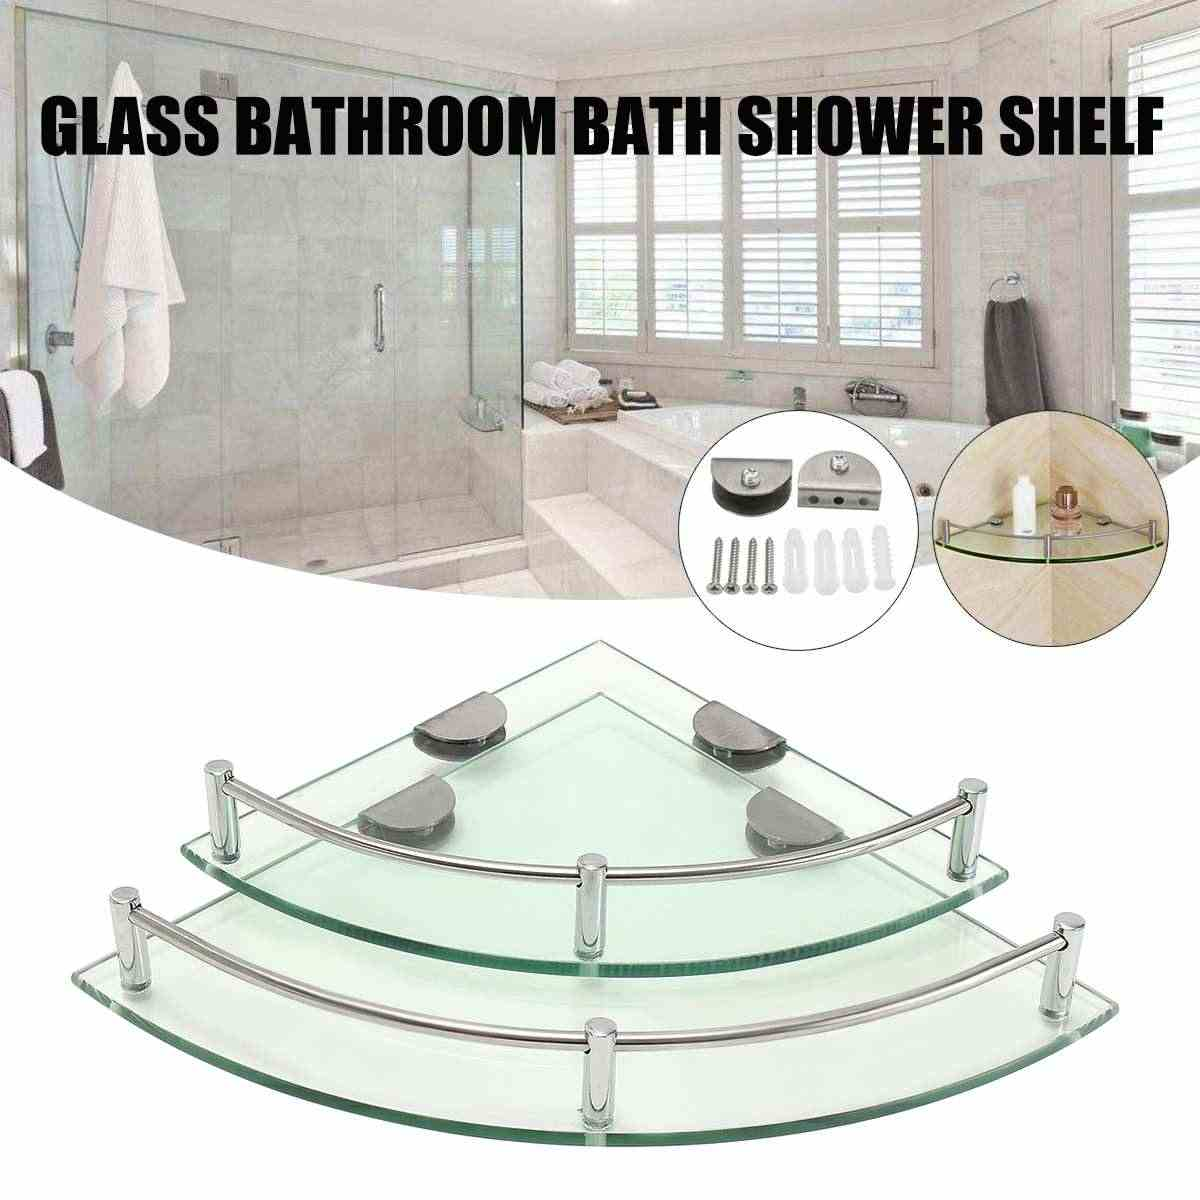 New 2 Size Bathroom Glass Triangular Wall Mount Corner Shelf Rack Storage Holder Bathroom Product Toothbrush Toothpaste Brasket